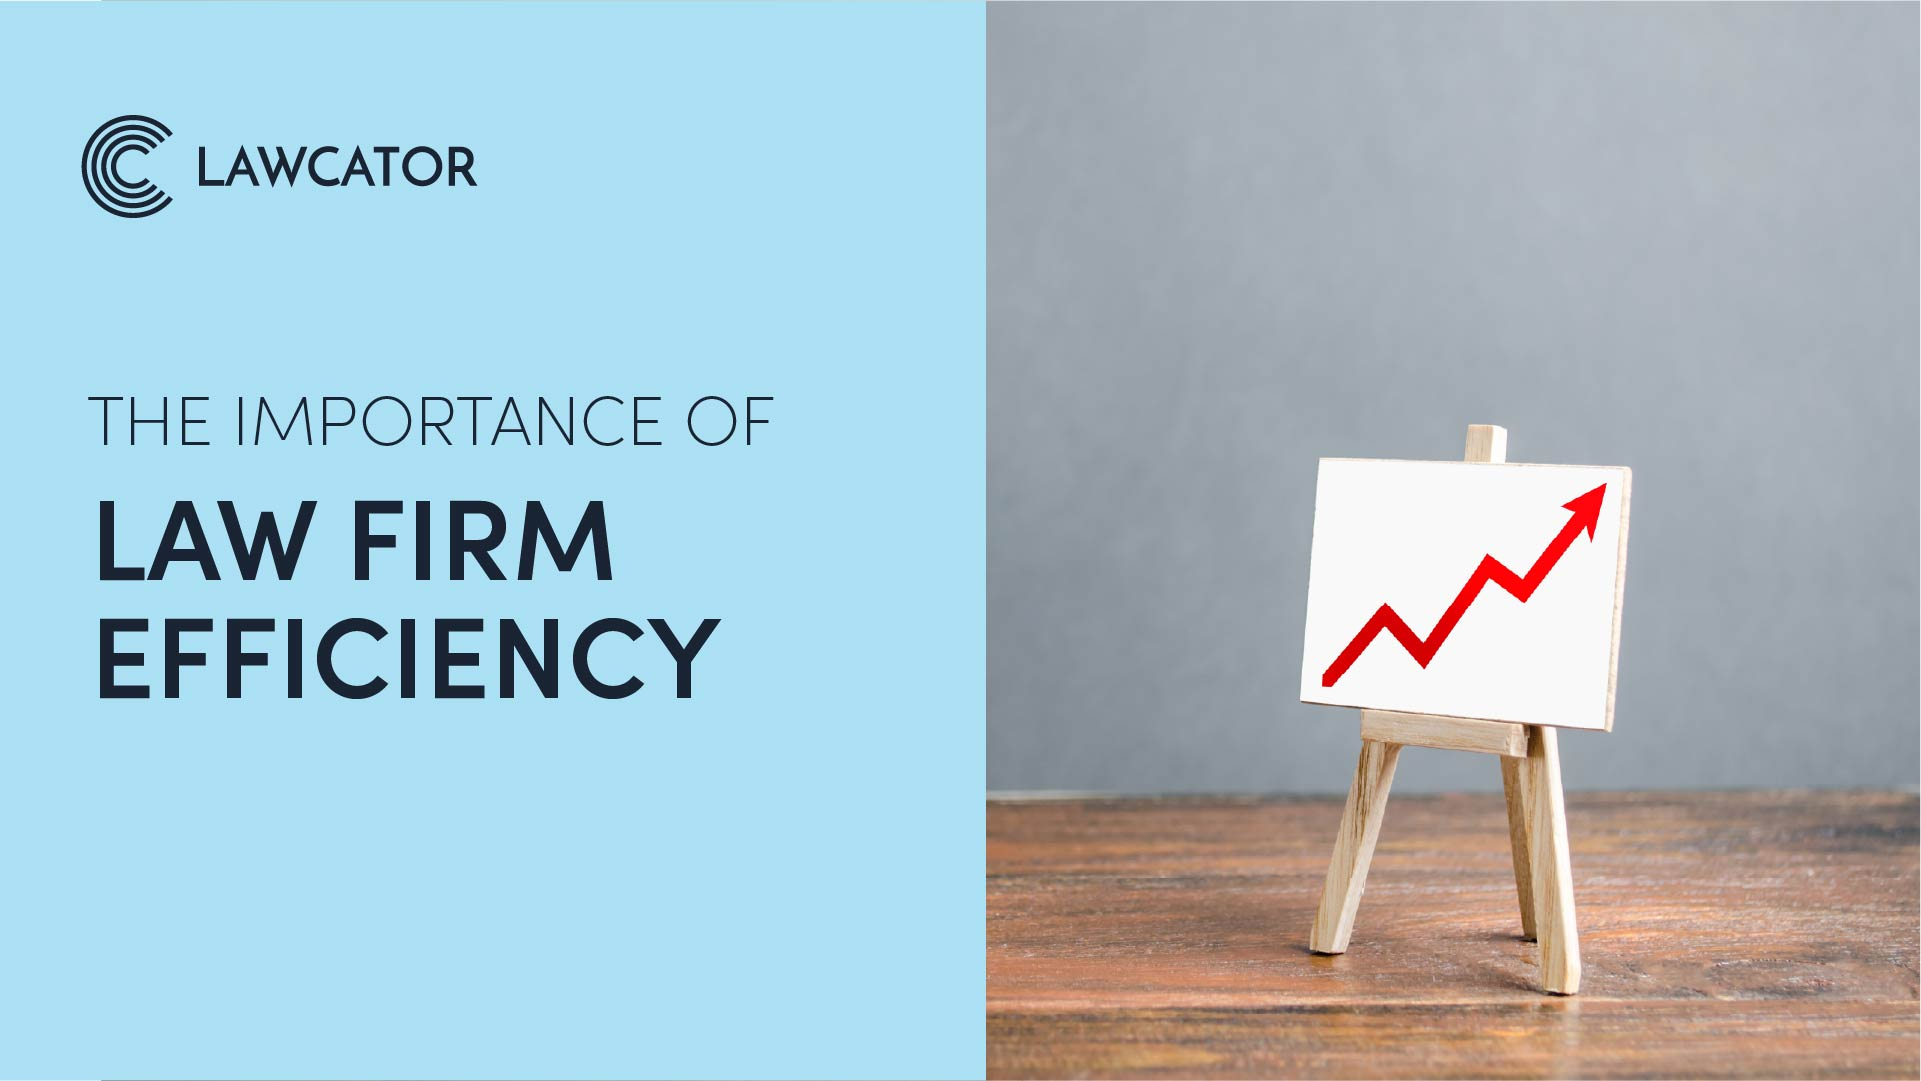 The importance of law firm efficiency